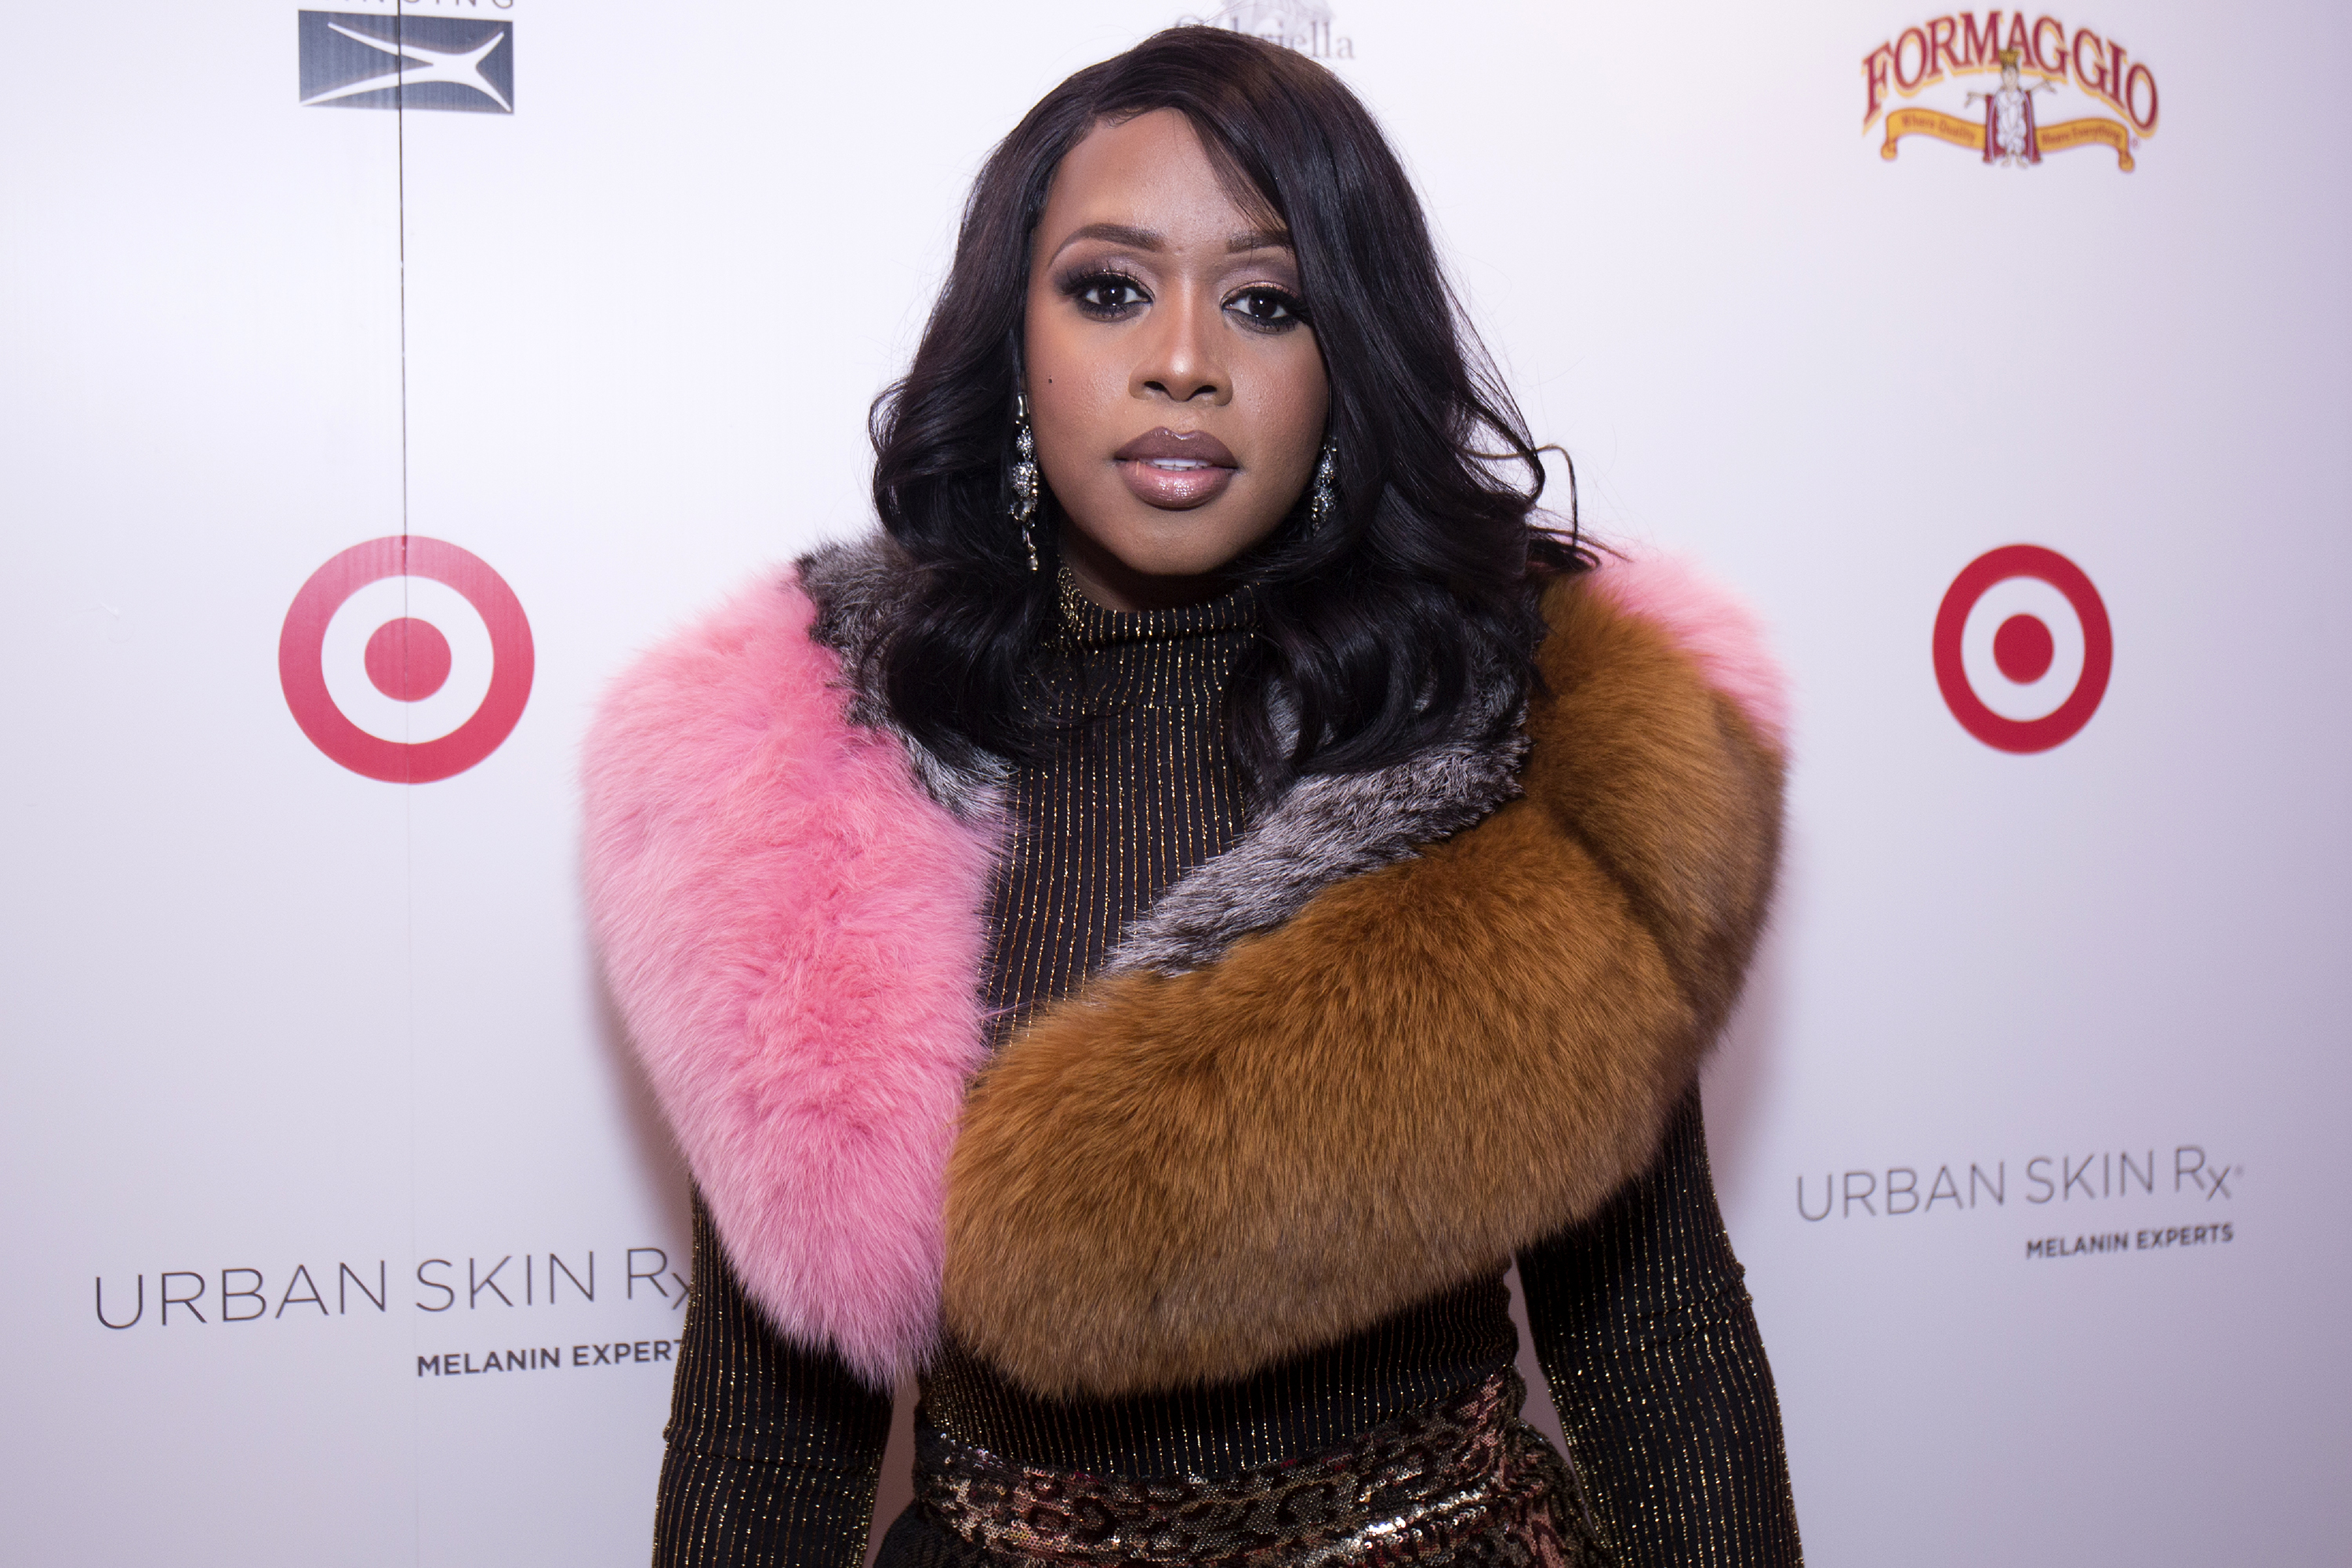 Urban Skin Rx Target Launch Hosted By Eva Marcille